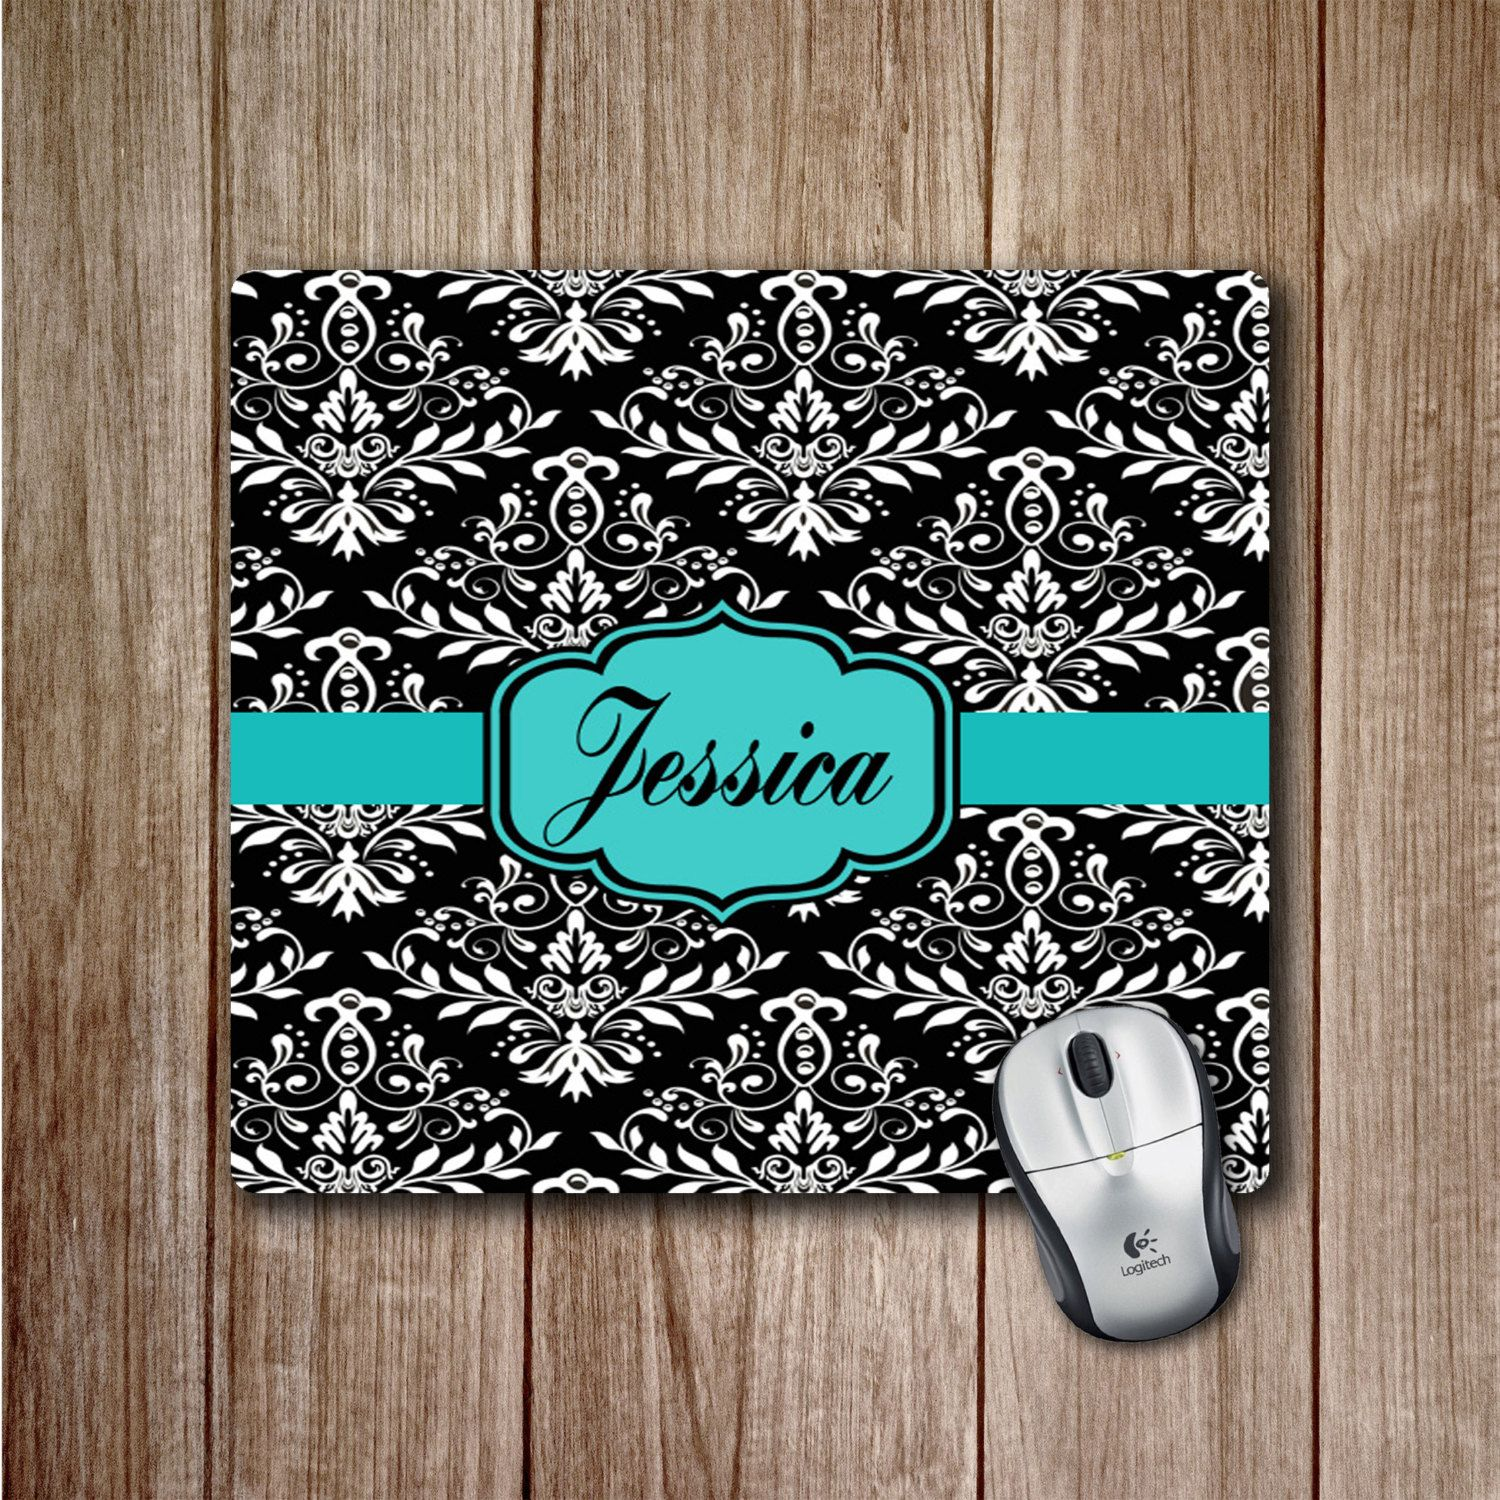 damask office accessories. monogram mousepad black and white damask pattern with teal accents personalized office accessories cute mousepads l